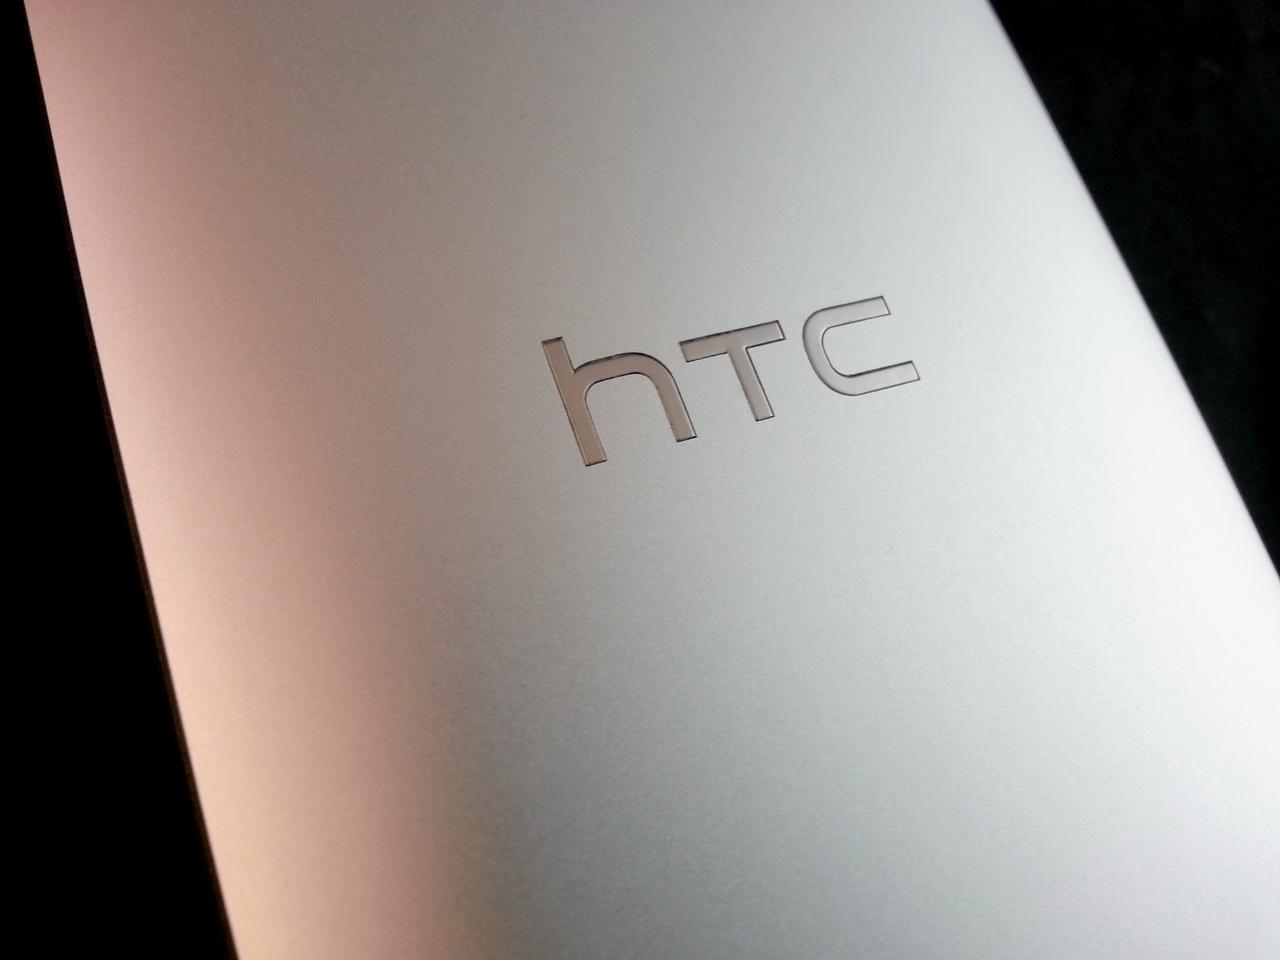 HTC dug itself into quite the hole